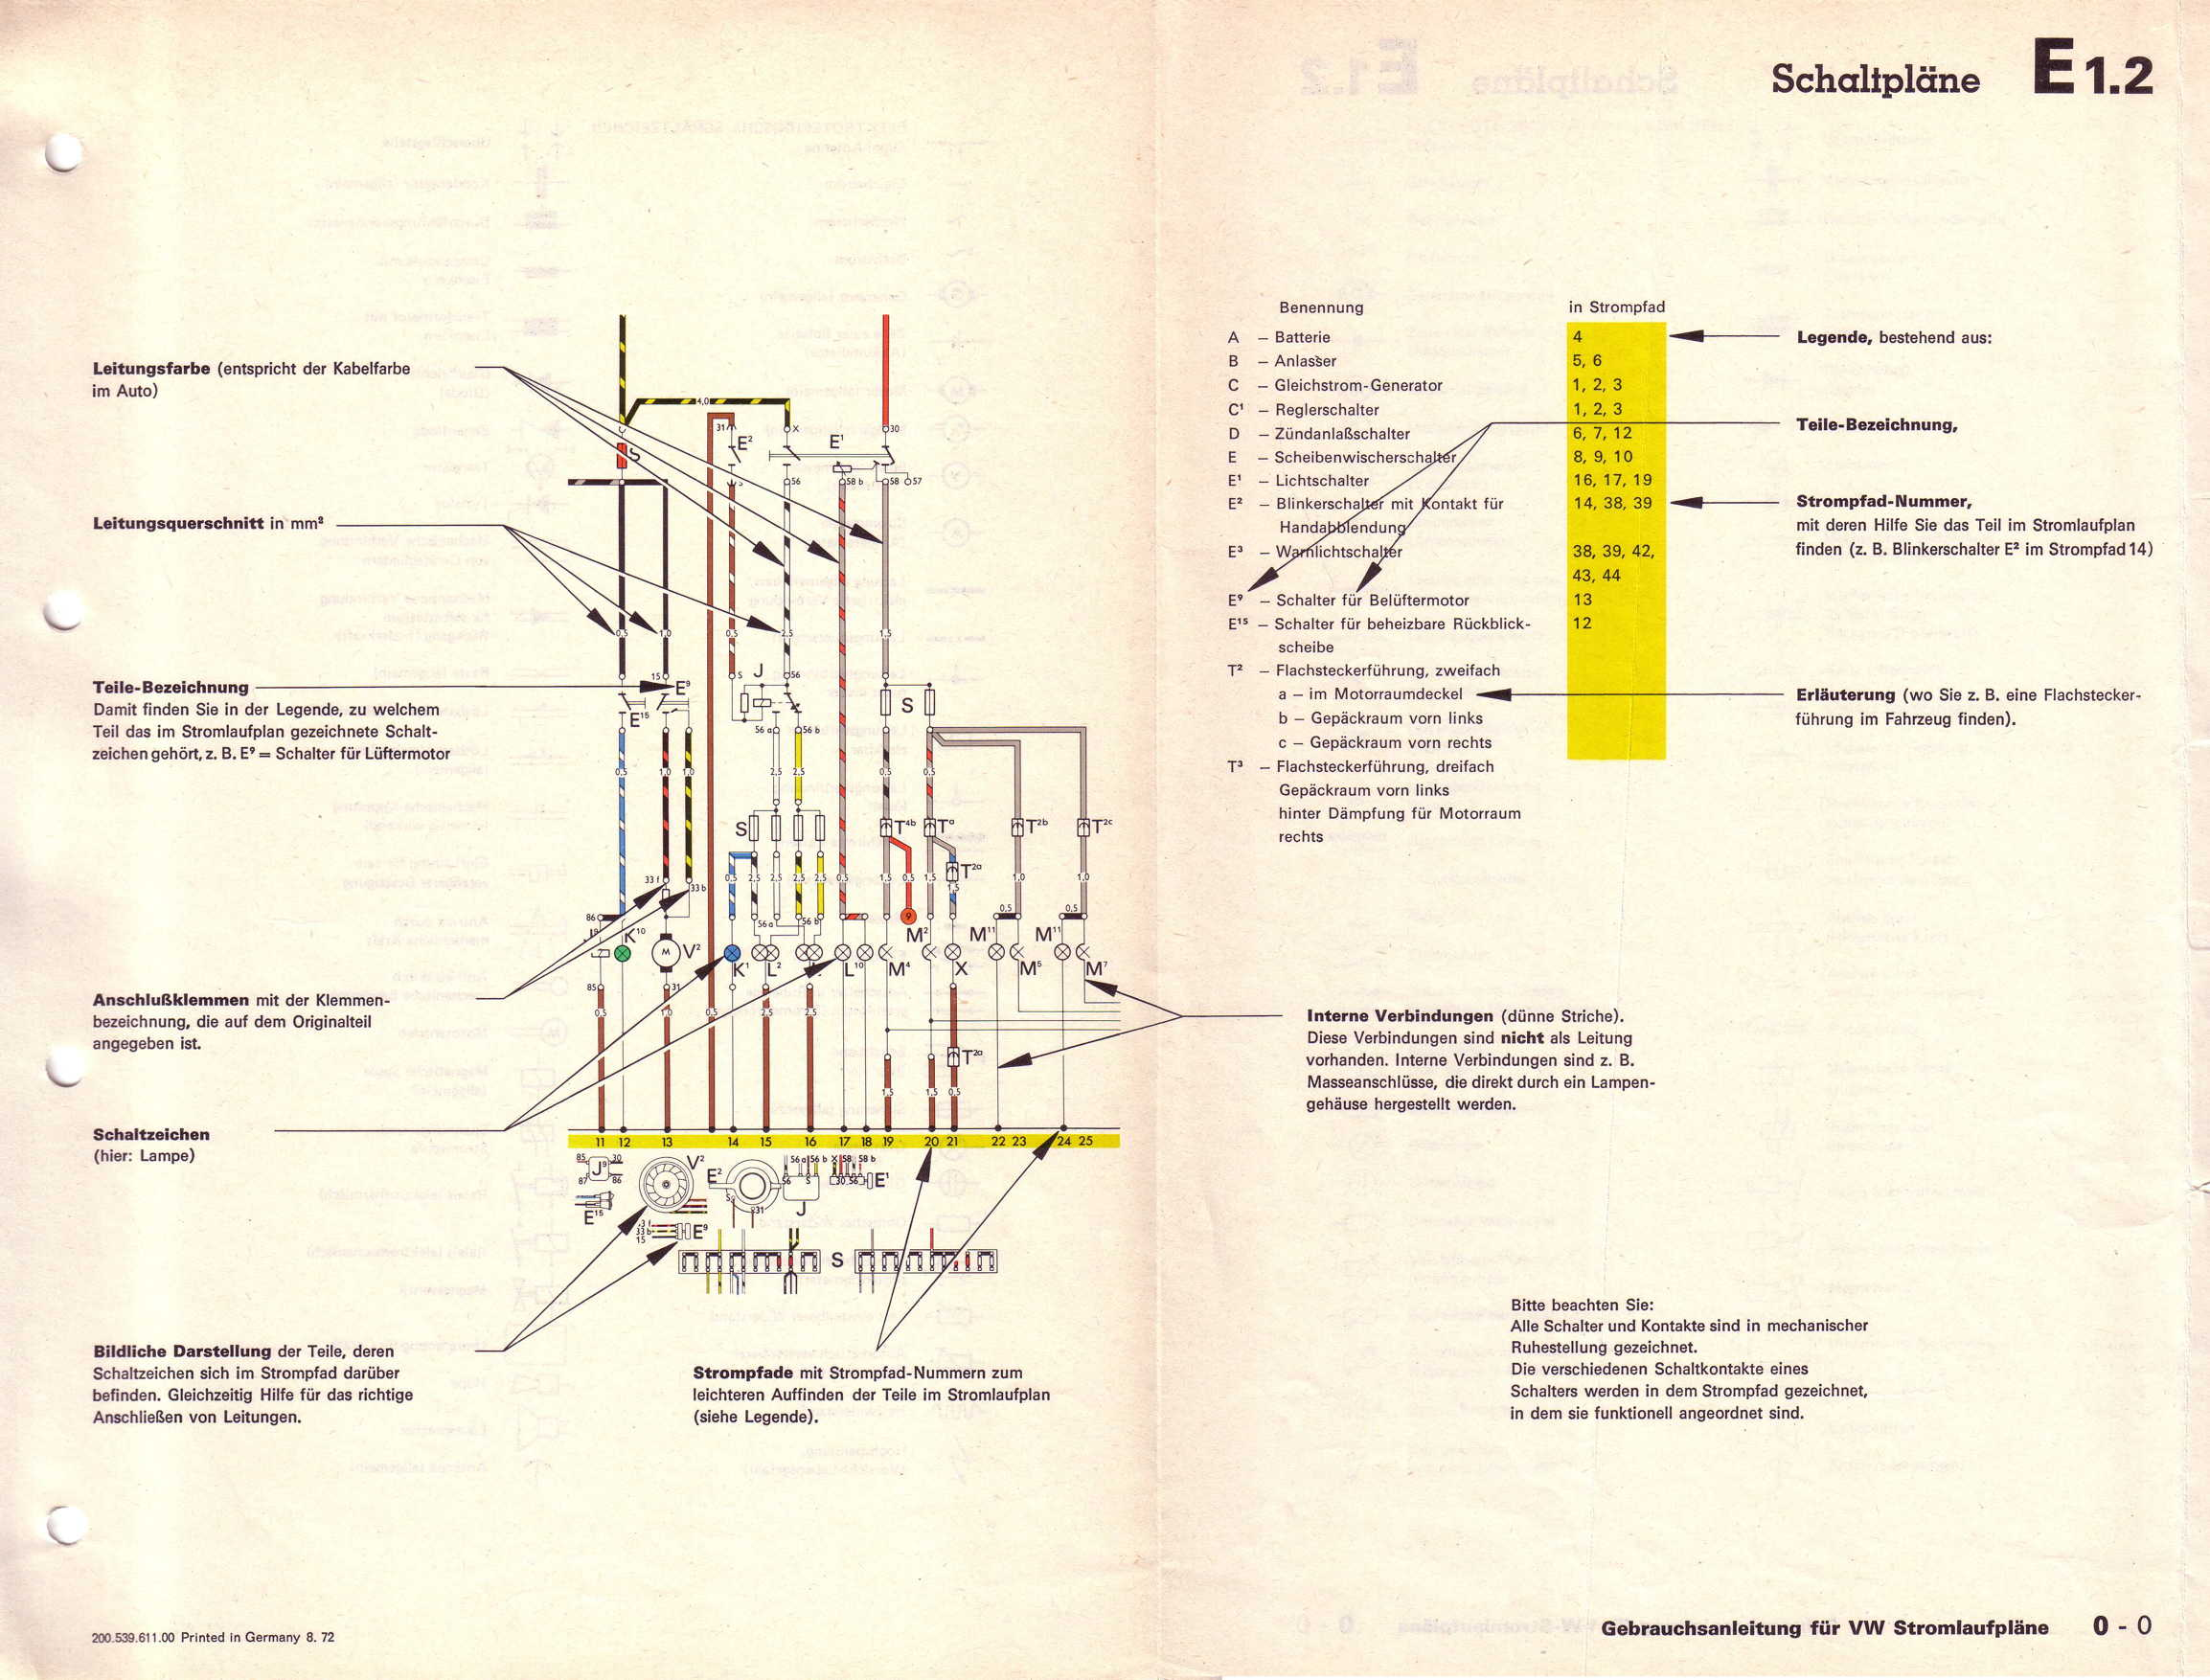 1972 08 vw instructions wiring diagram?resize\=665%2C506 bad boy horn wiring diagram bad boy parts diagram, bad boy Lawn Boy Mower Carbureator Diagram at eliteediting.co